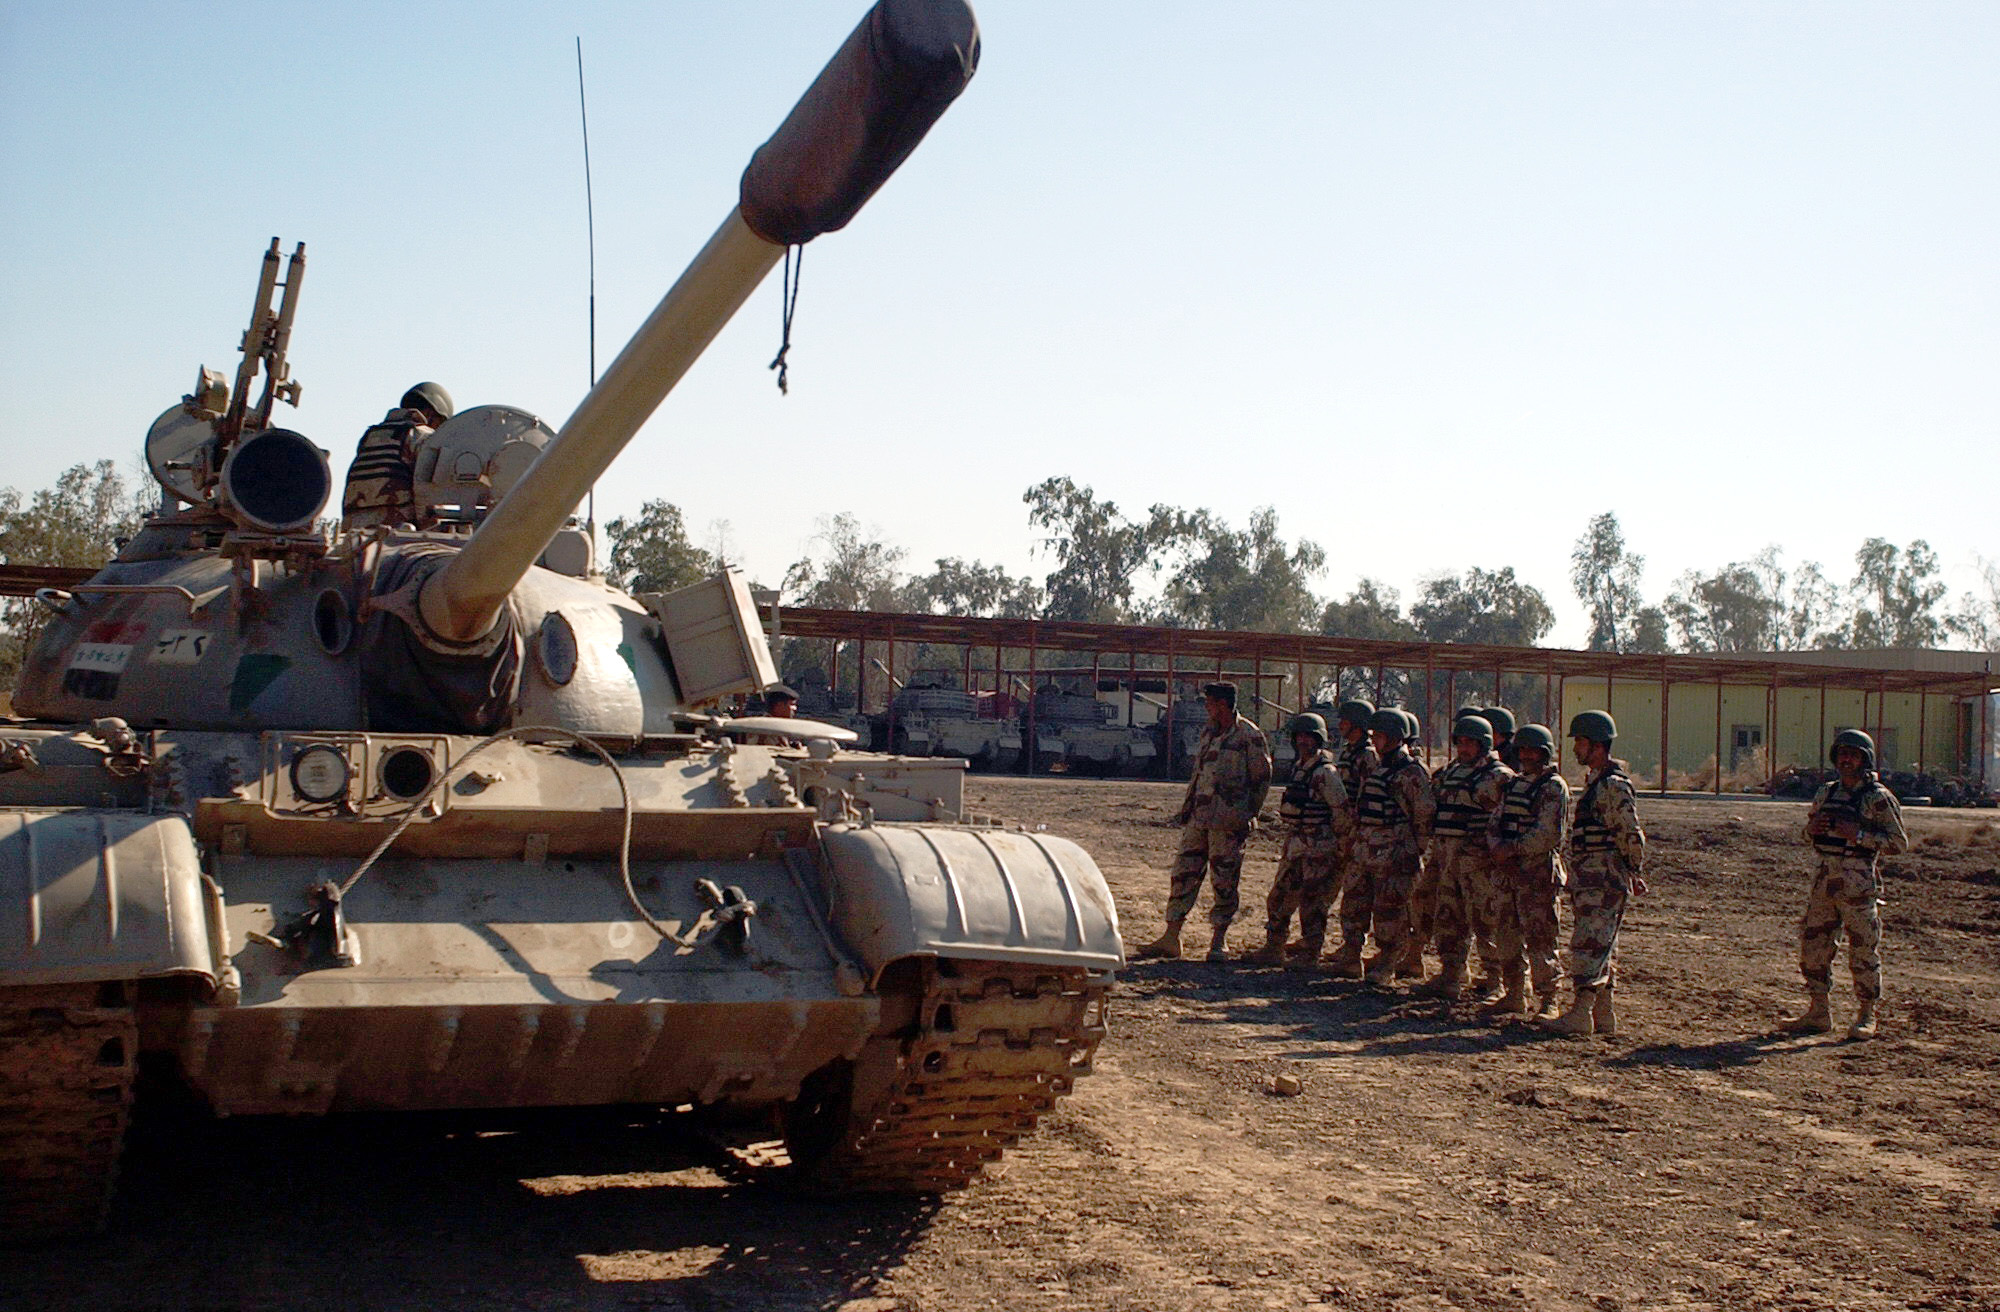 Iraqi_T-55_tank_at_Camp_Taji.jpg